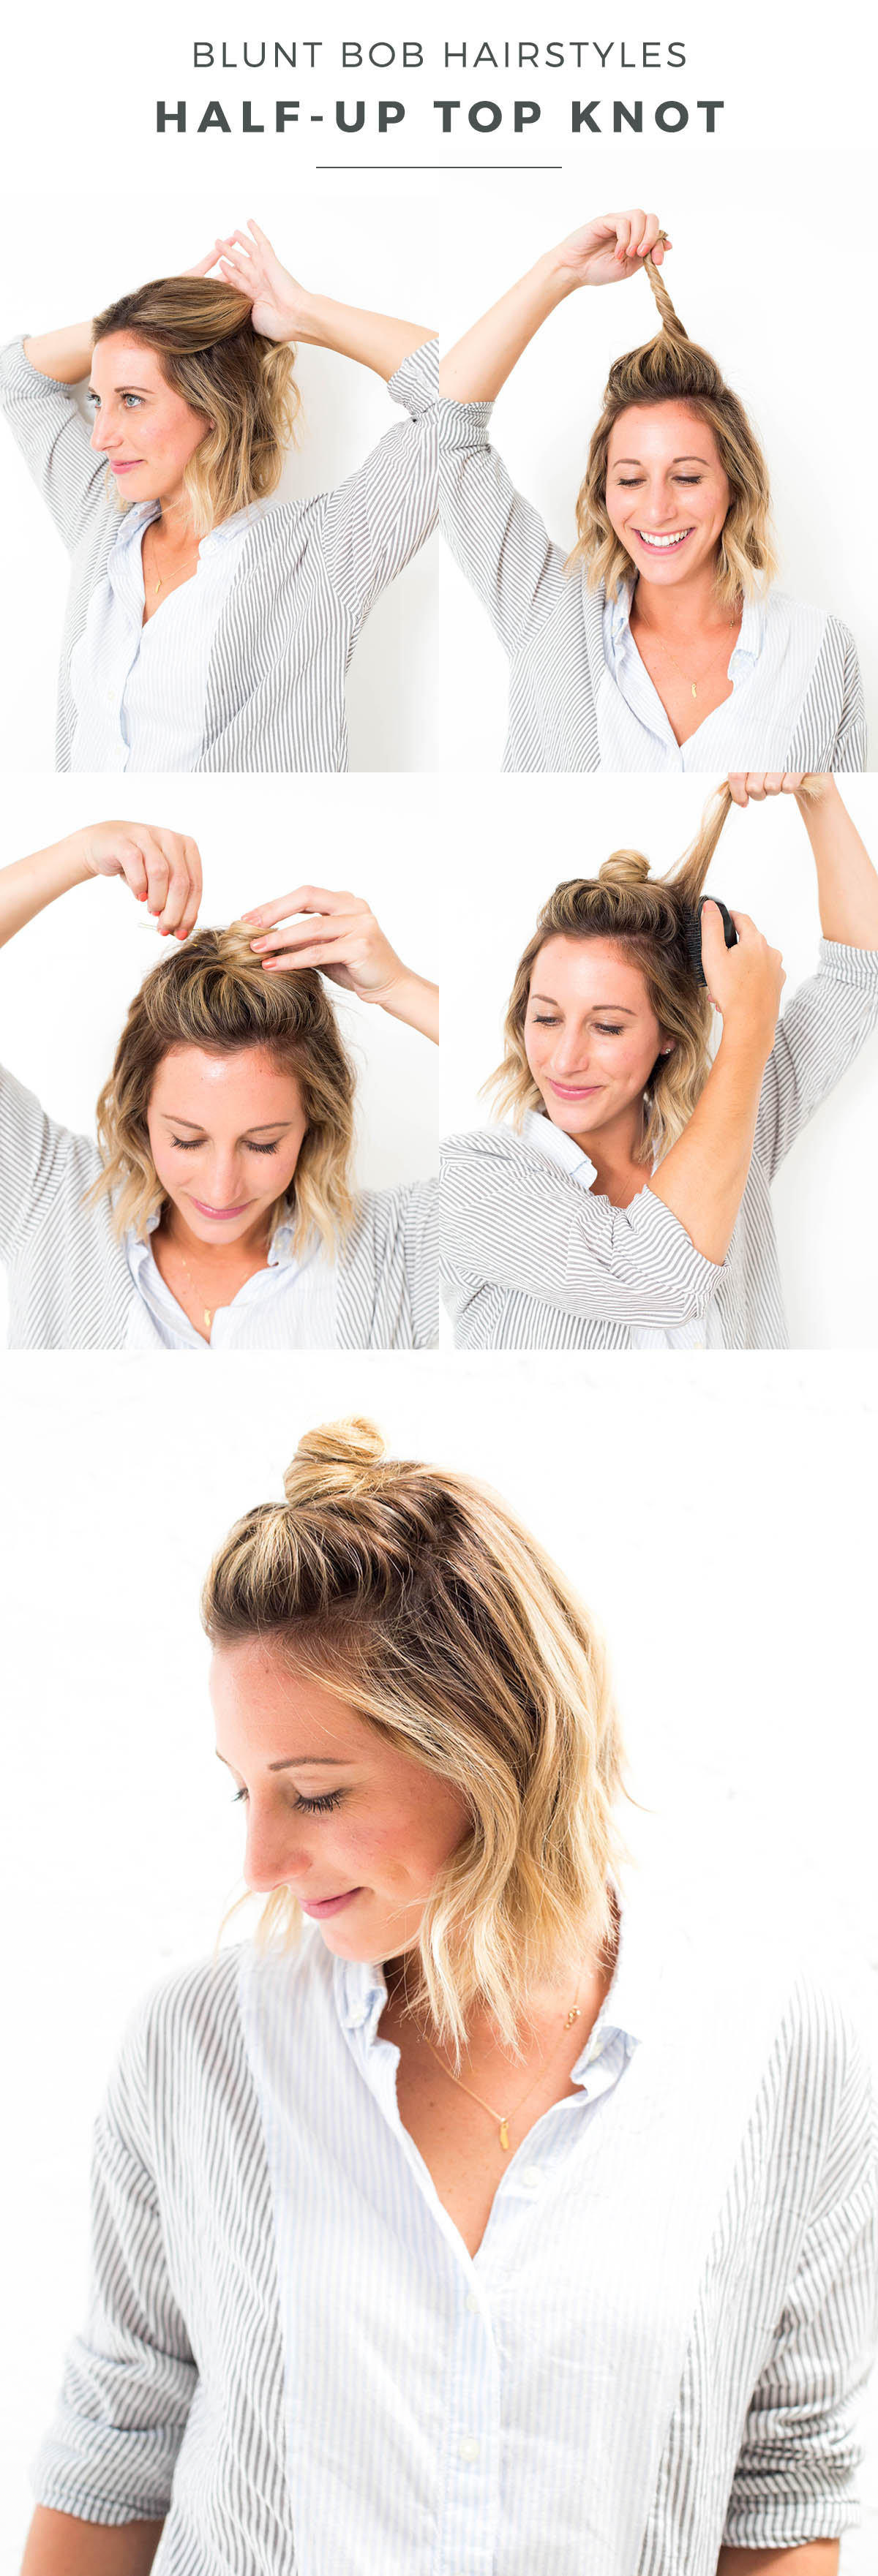 blunt bob half-up top knot hair tutorial